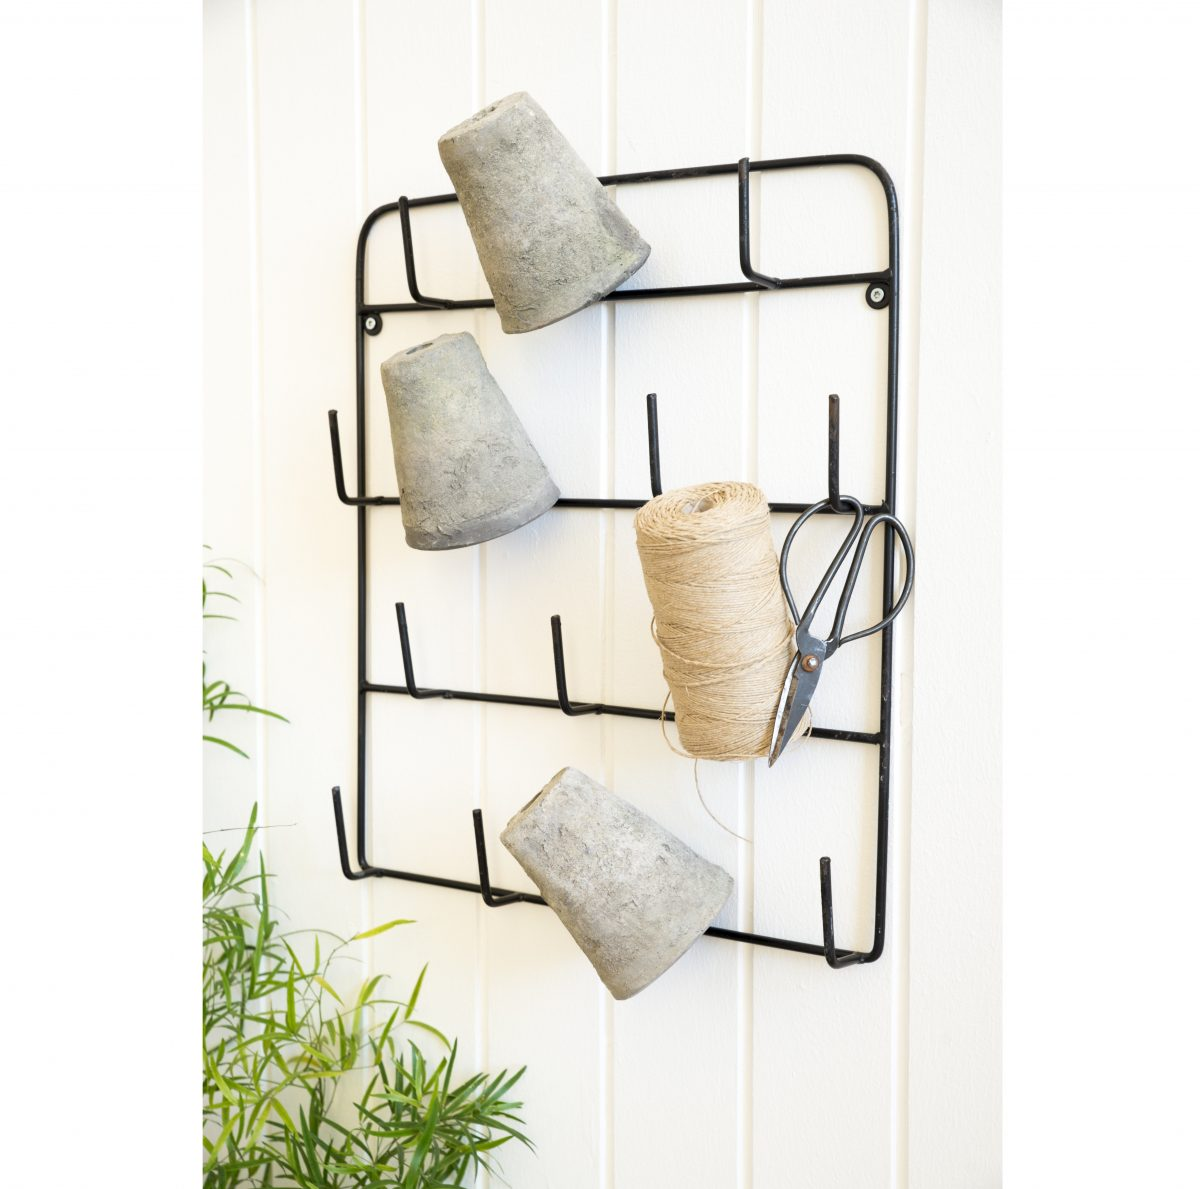 Wall Hanging Rack Organiser with 14 Hooks for Cups by Ib Laursen